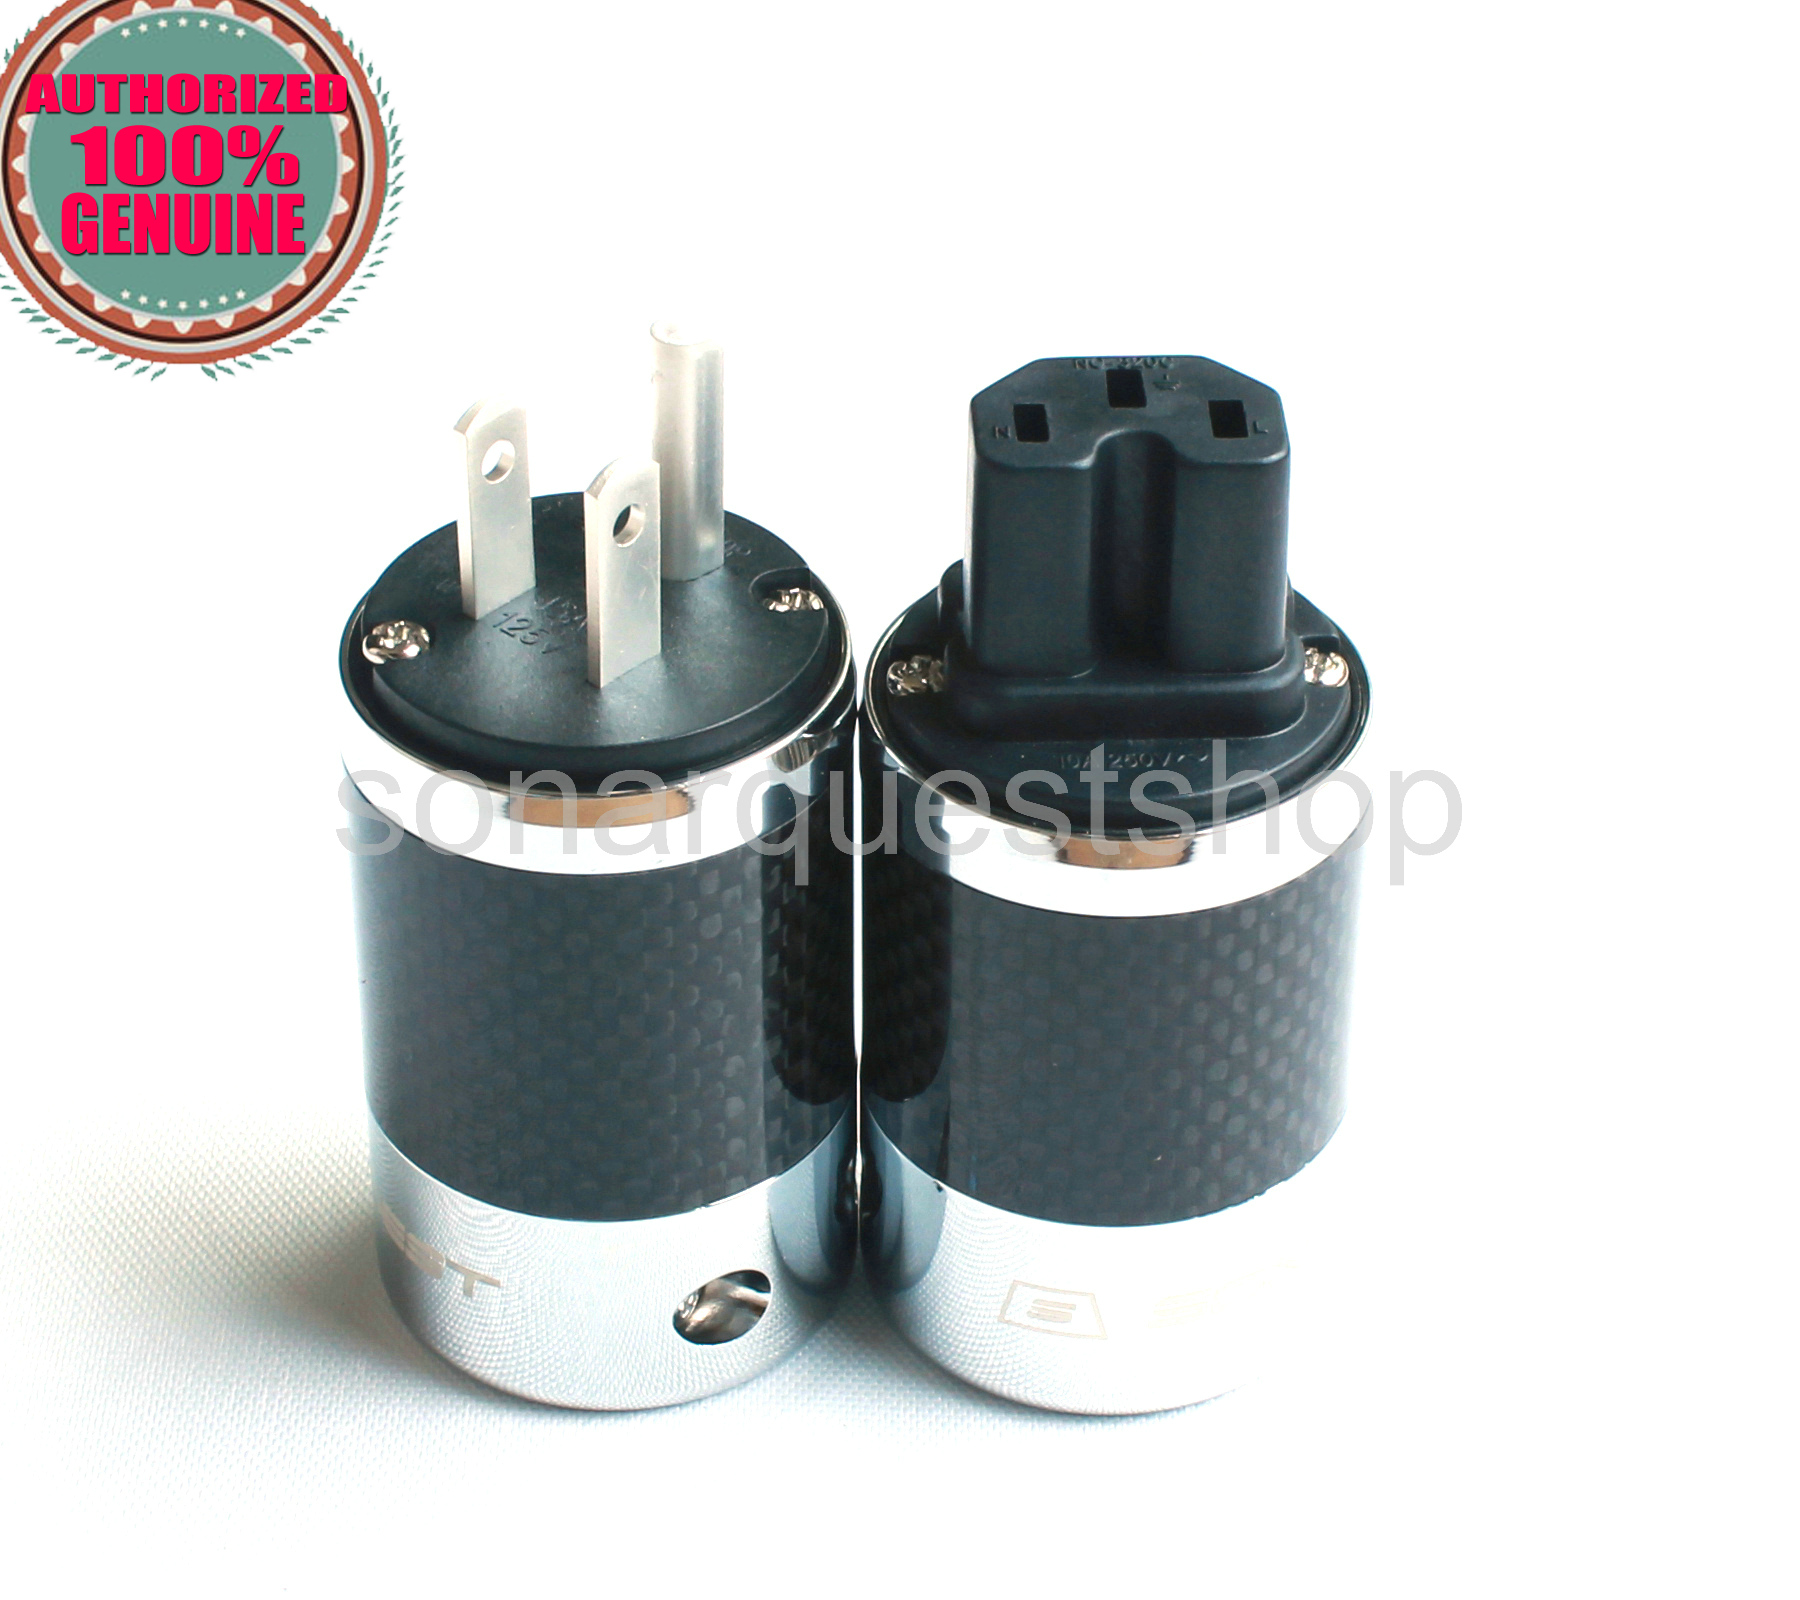 SONARQUEST SQ-P39(Ag)B + SQ-C39(Ag)B US silver Plated BK Carbon fiber Power Plug & IEC Connector